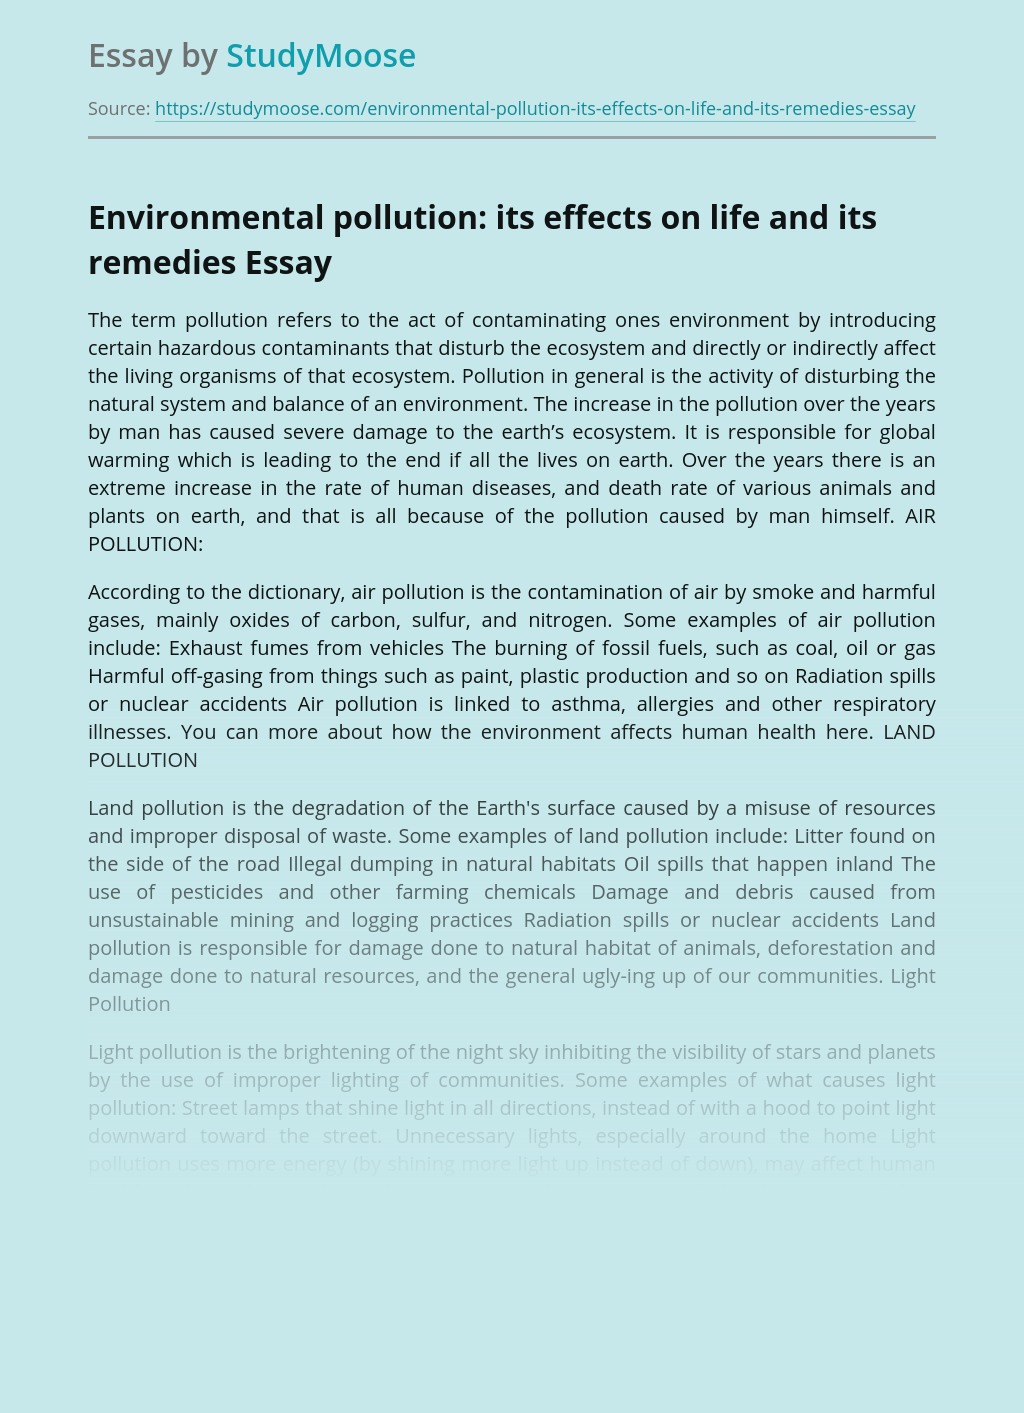 Environmental pollution: its effects on life and its remedies